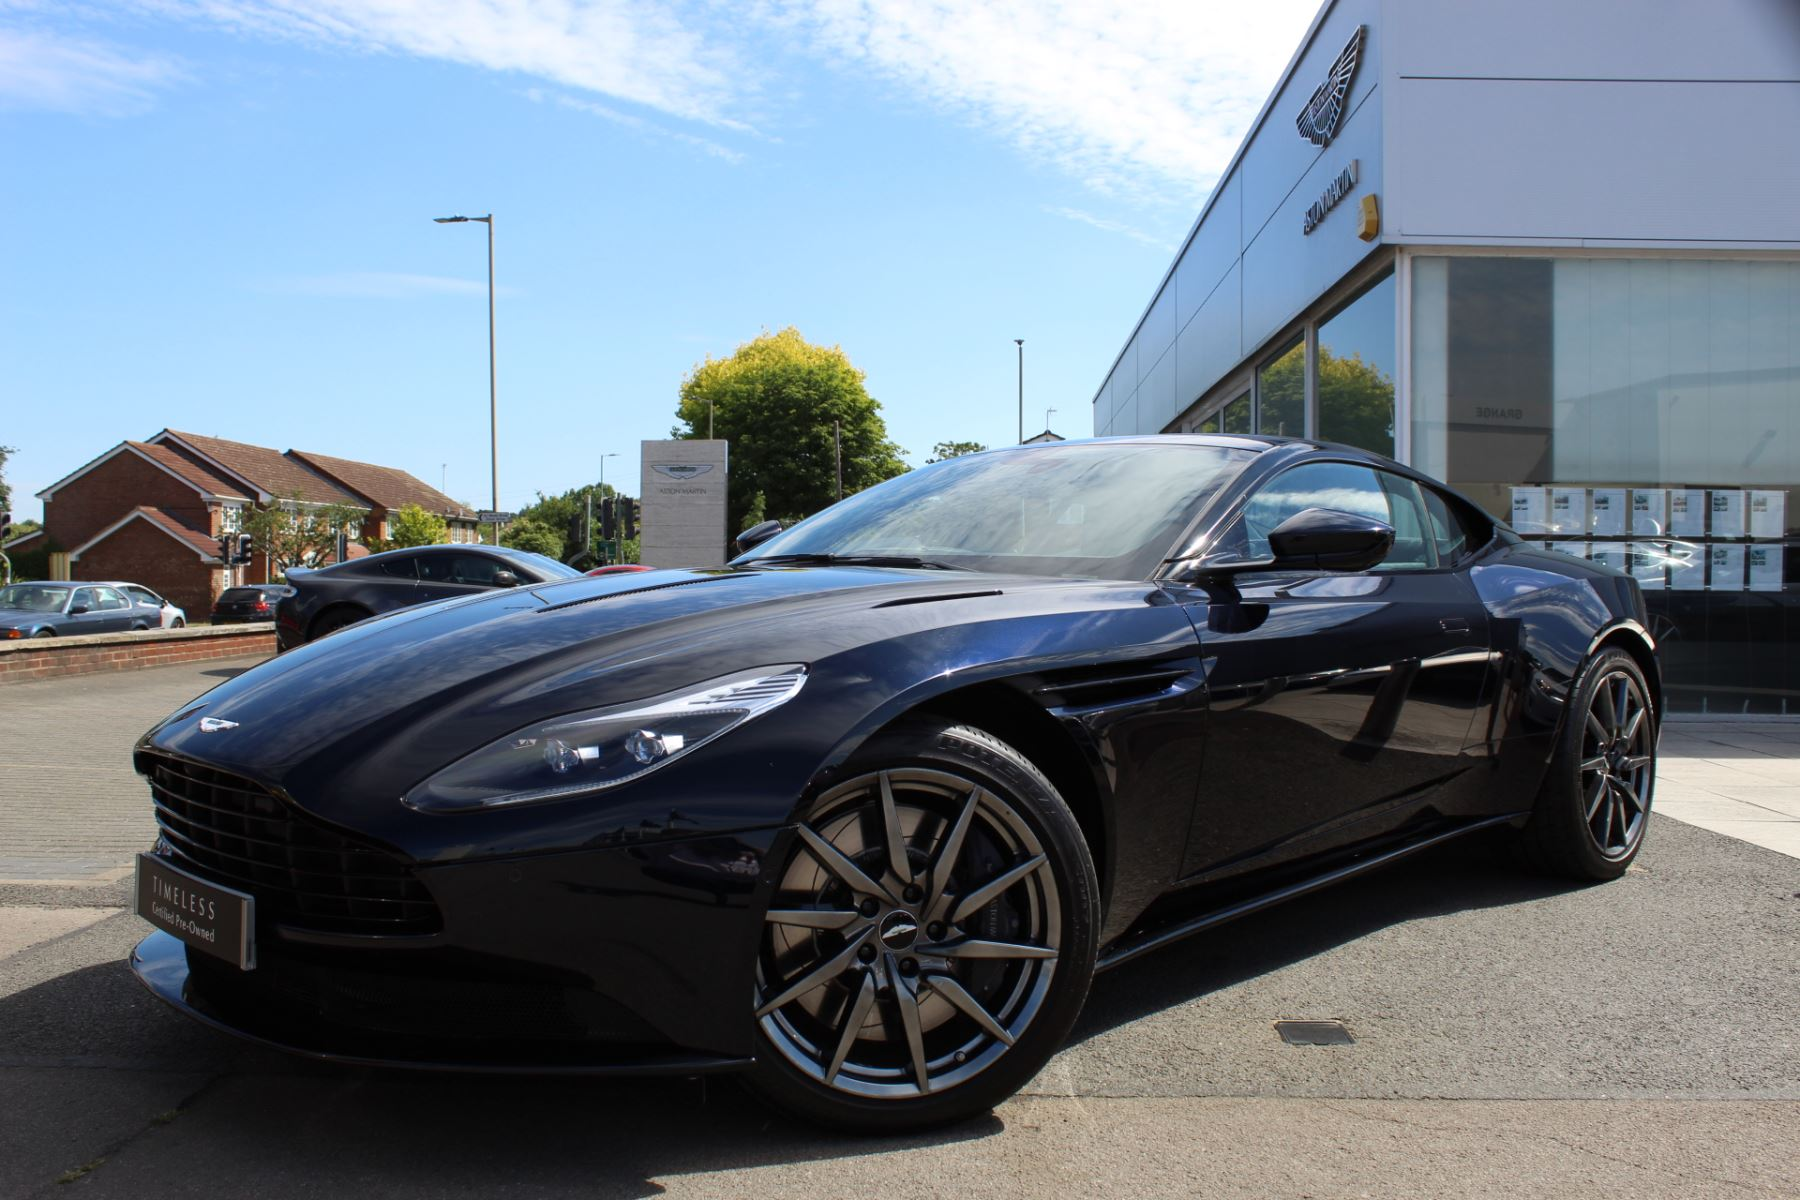 Aston Martin DB11 V12 2dr Touchtronic 5.2 Automatic Coupe (2017.5) image